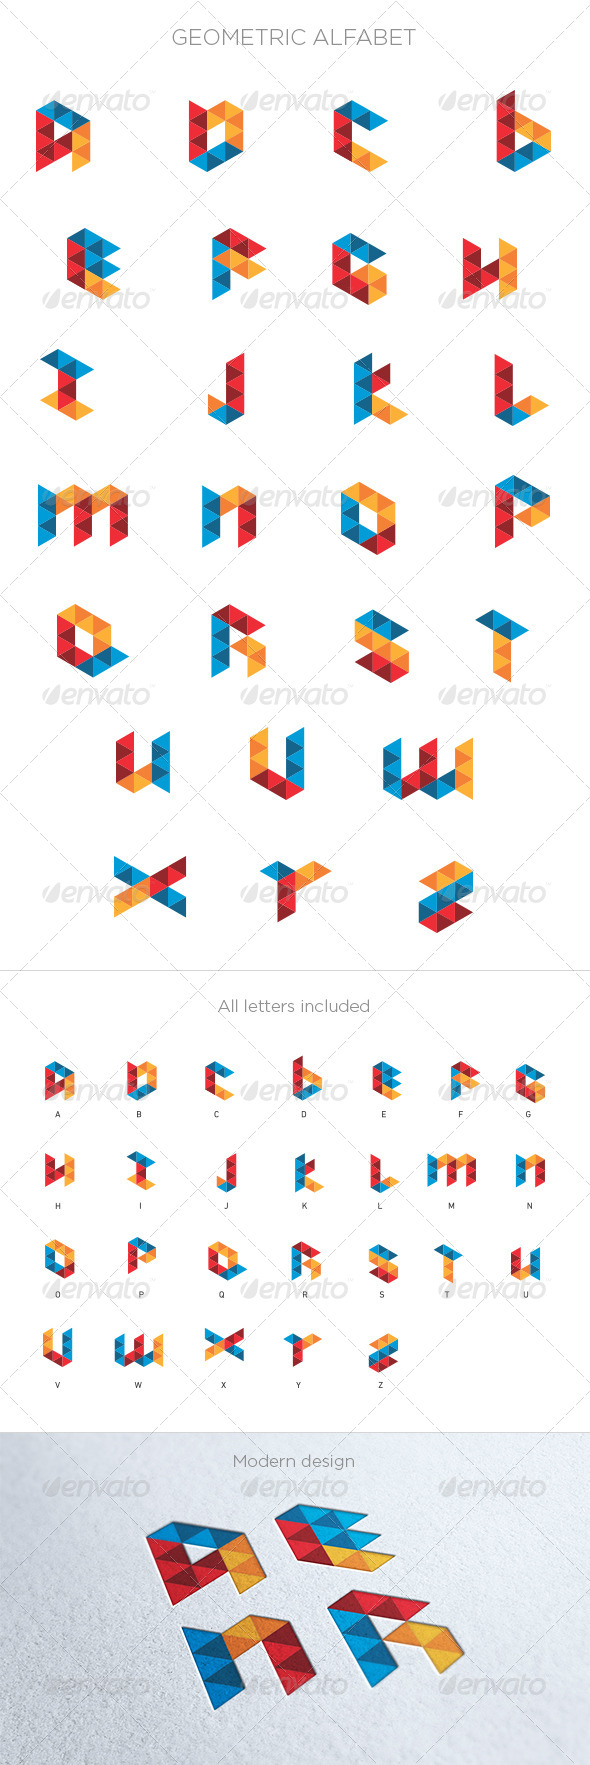 Geometric Alphabet - Vectors